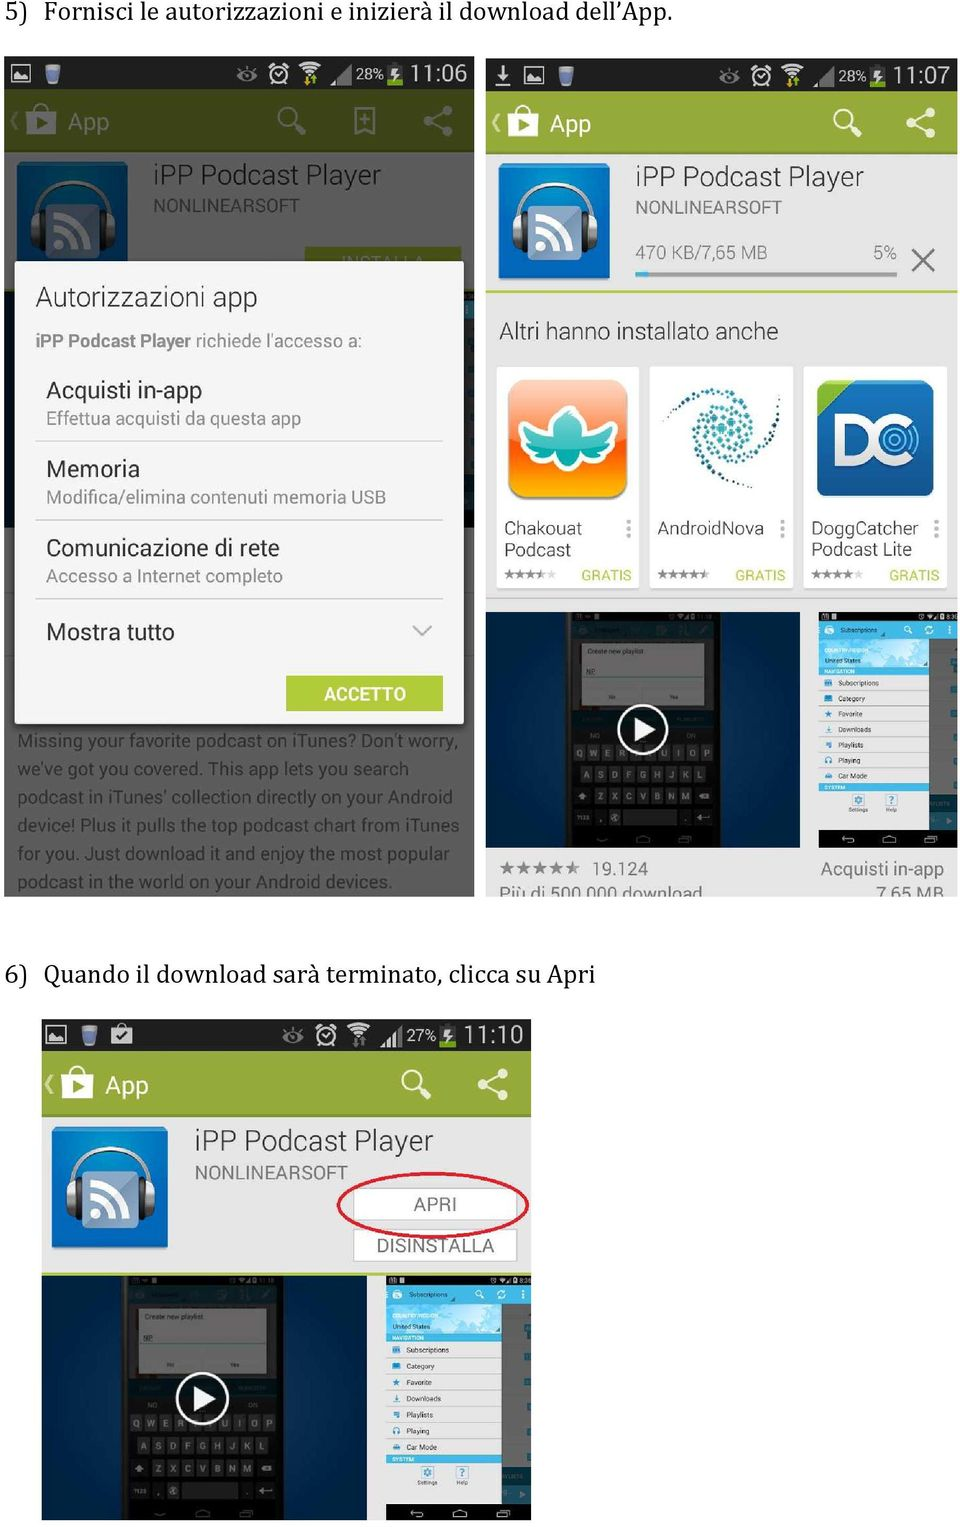 download dell App.